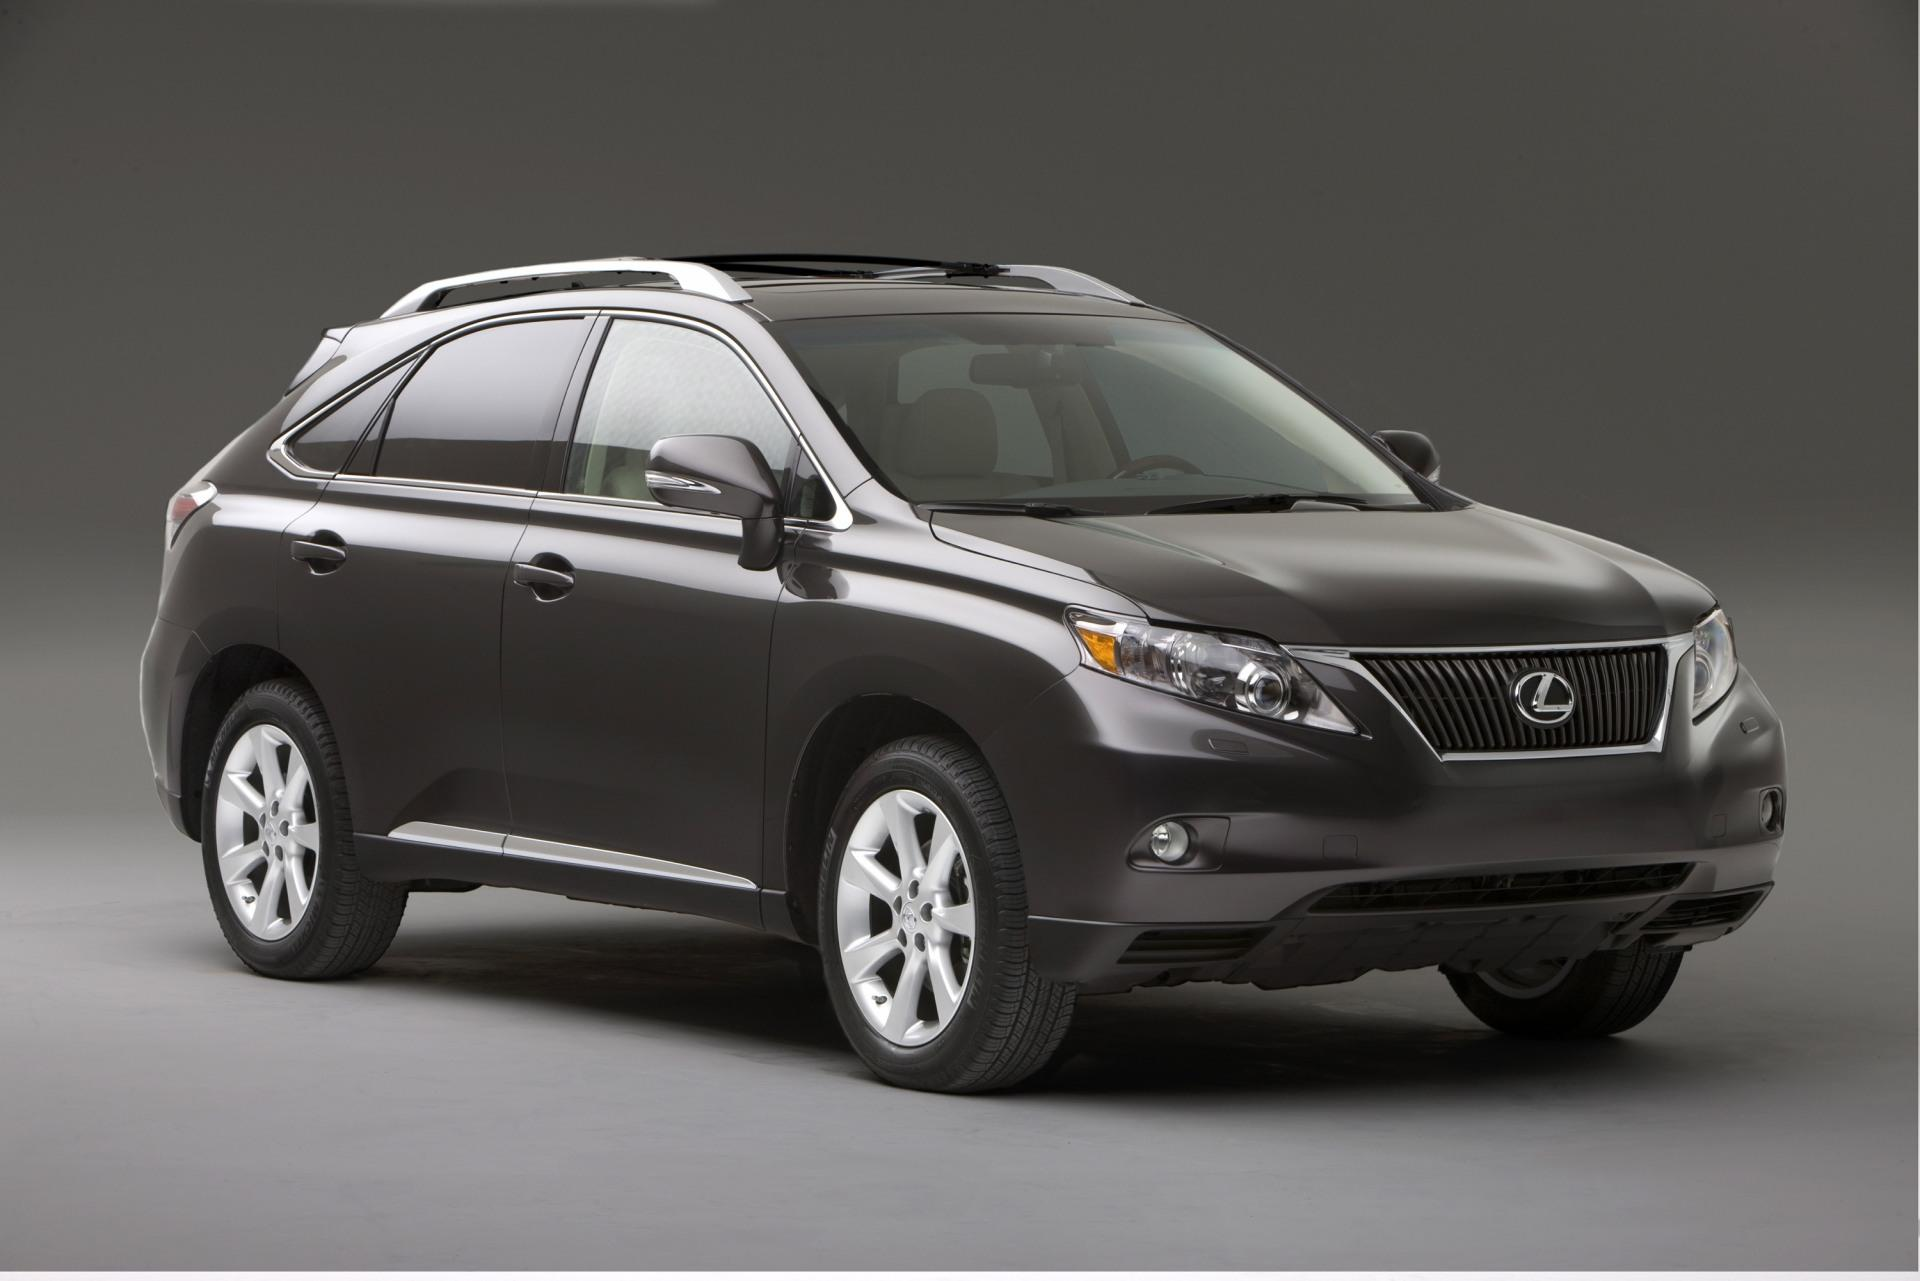 2010 lexus rx 350 technical specifications and data. Black Bedroom Furniture Sets. Home Design Ideas